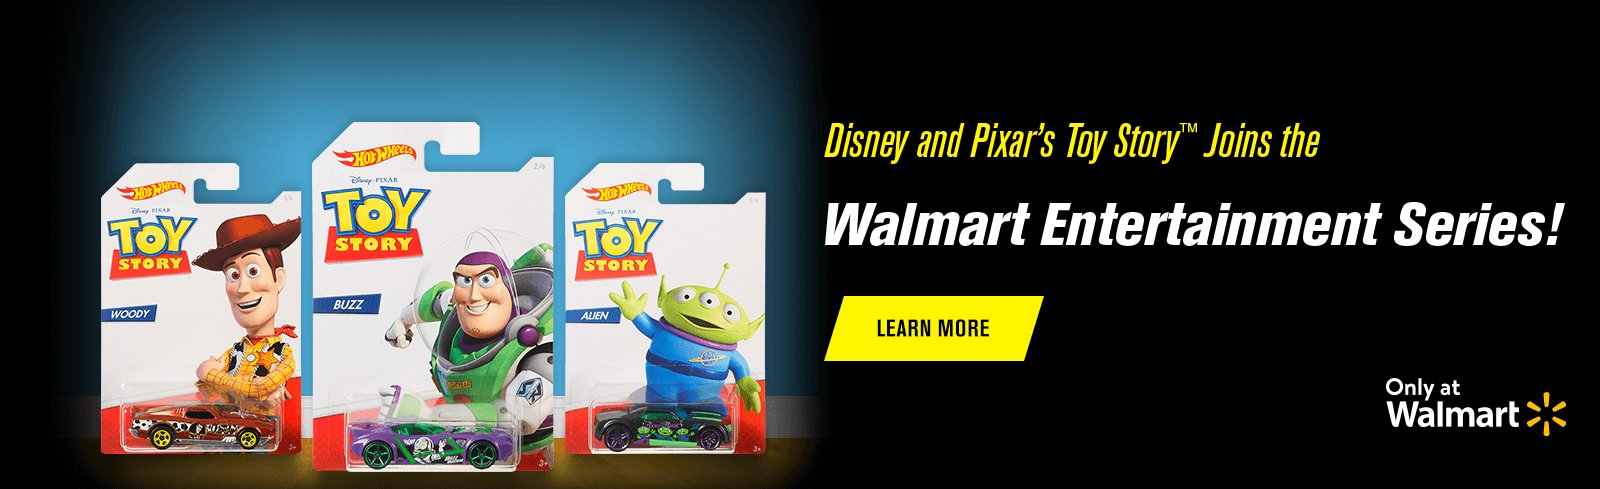 Disney and Pixar's Toy Story™ Joins the Walmart Entertainment Series!